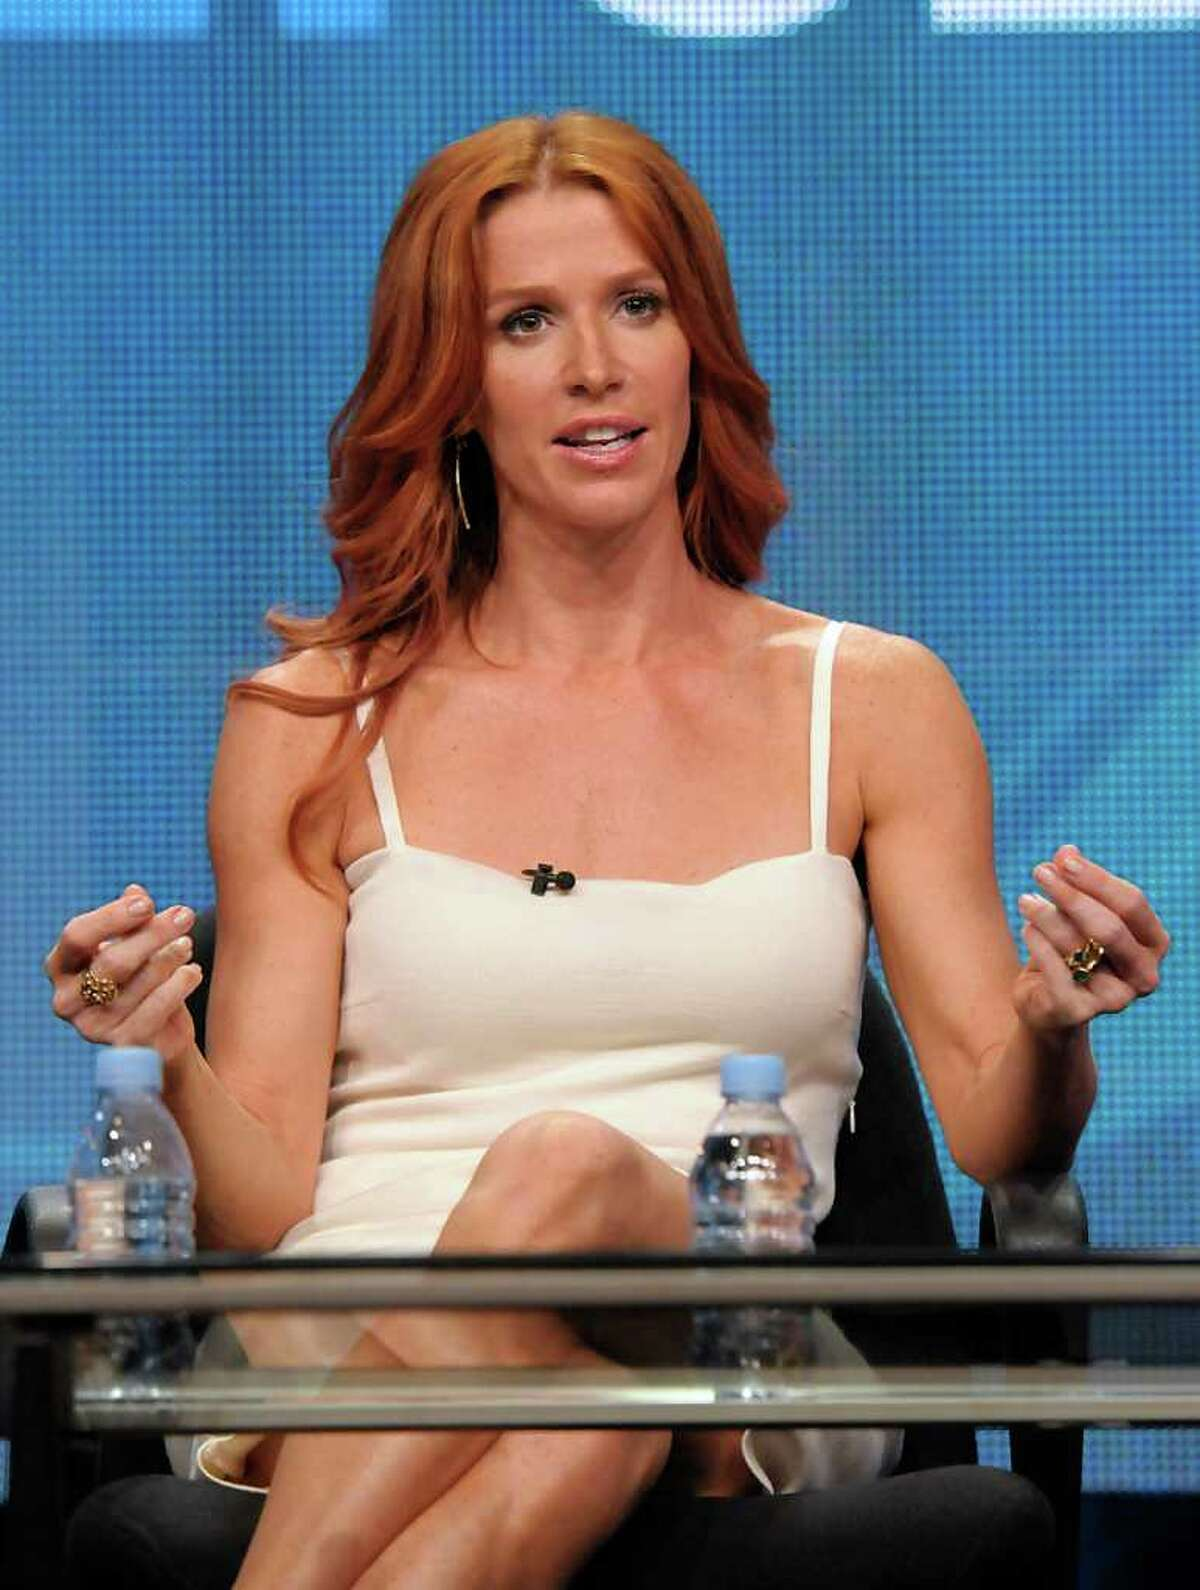 Actress Poppy Montgomery speaks during a panel at the The Television Critics Association 2011 Summer Press Tour in Beverly Hills, Calif. on Wednesday, Aug. 3, 2011. Montgomery stars in the television series